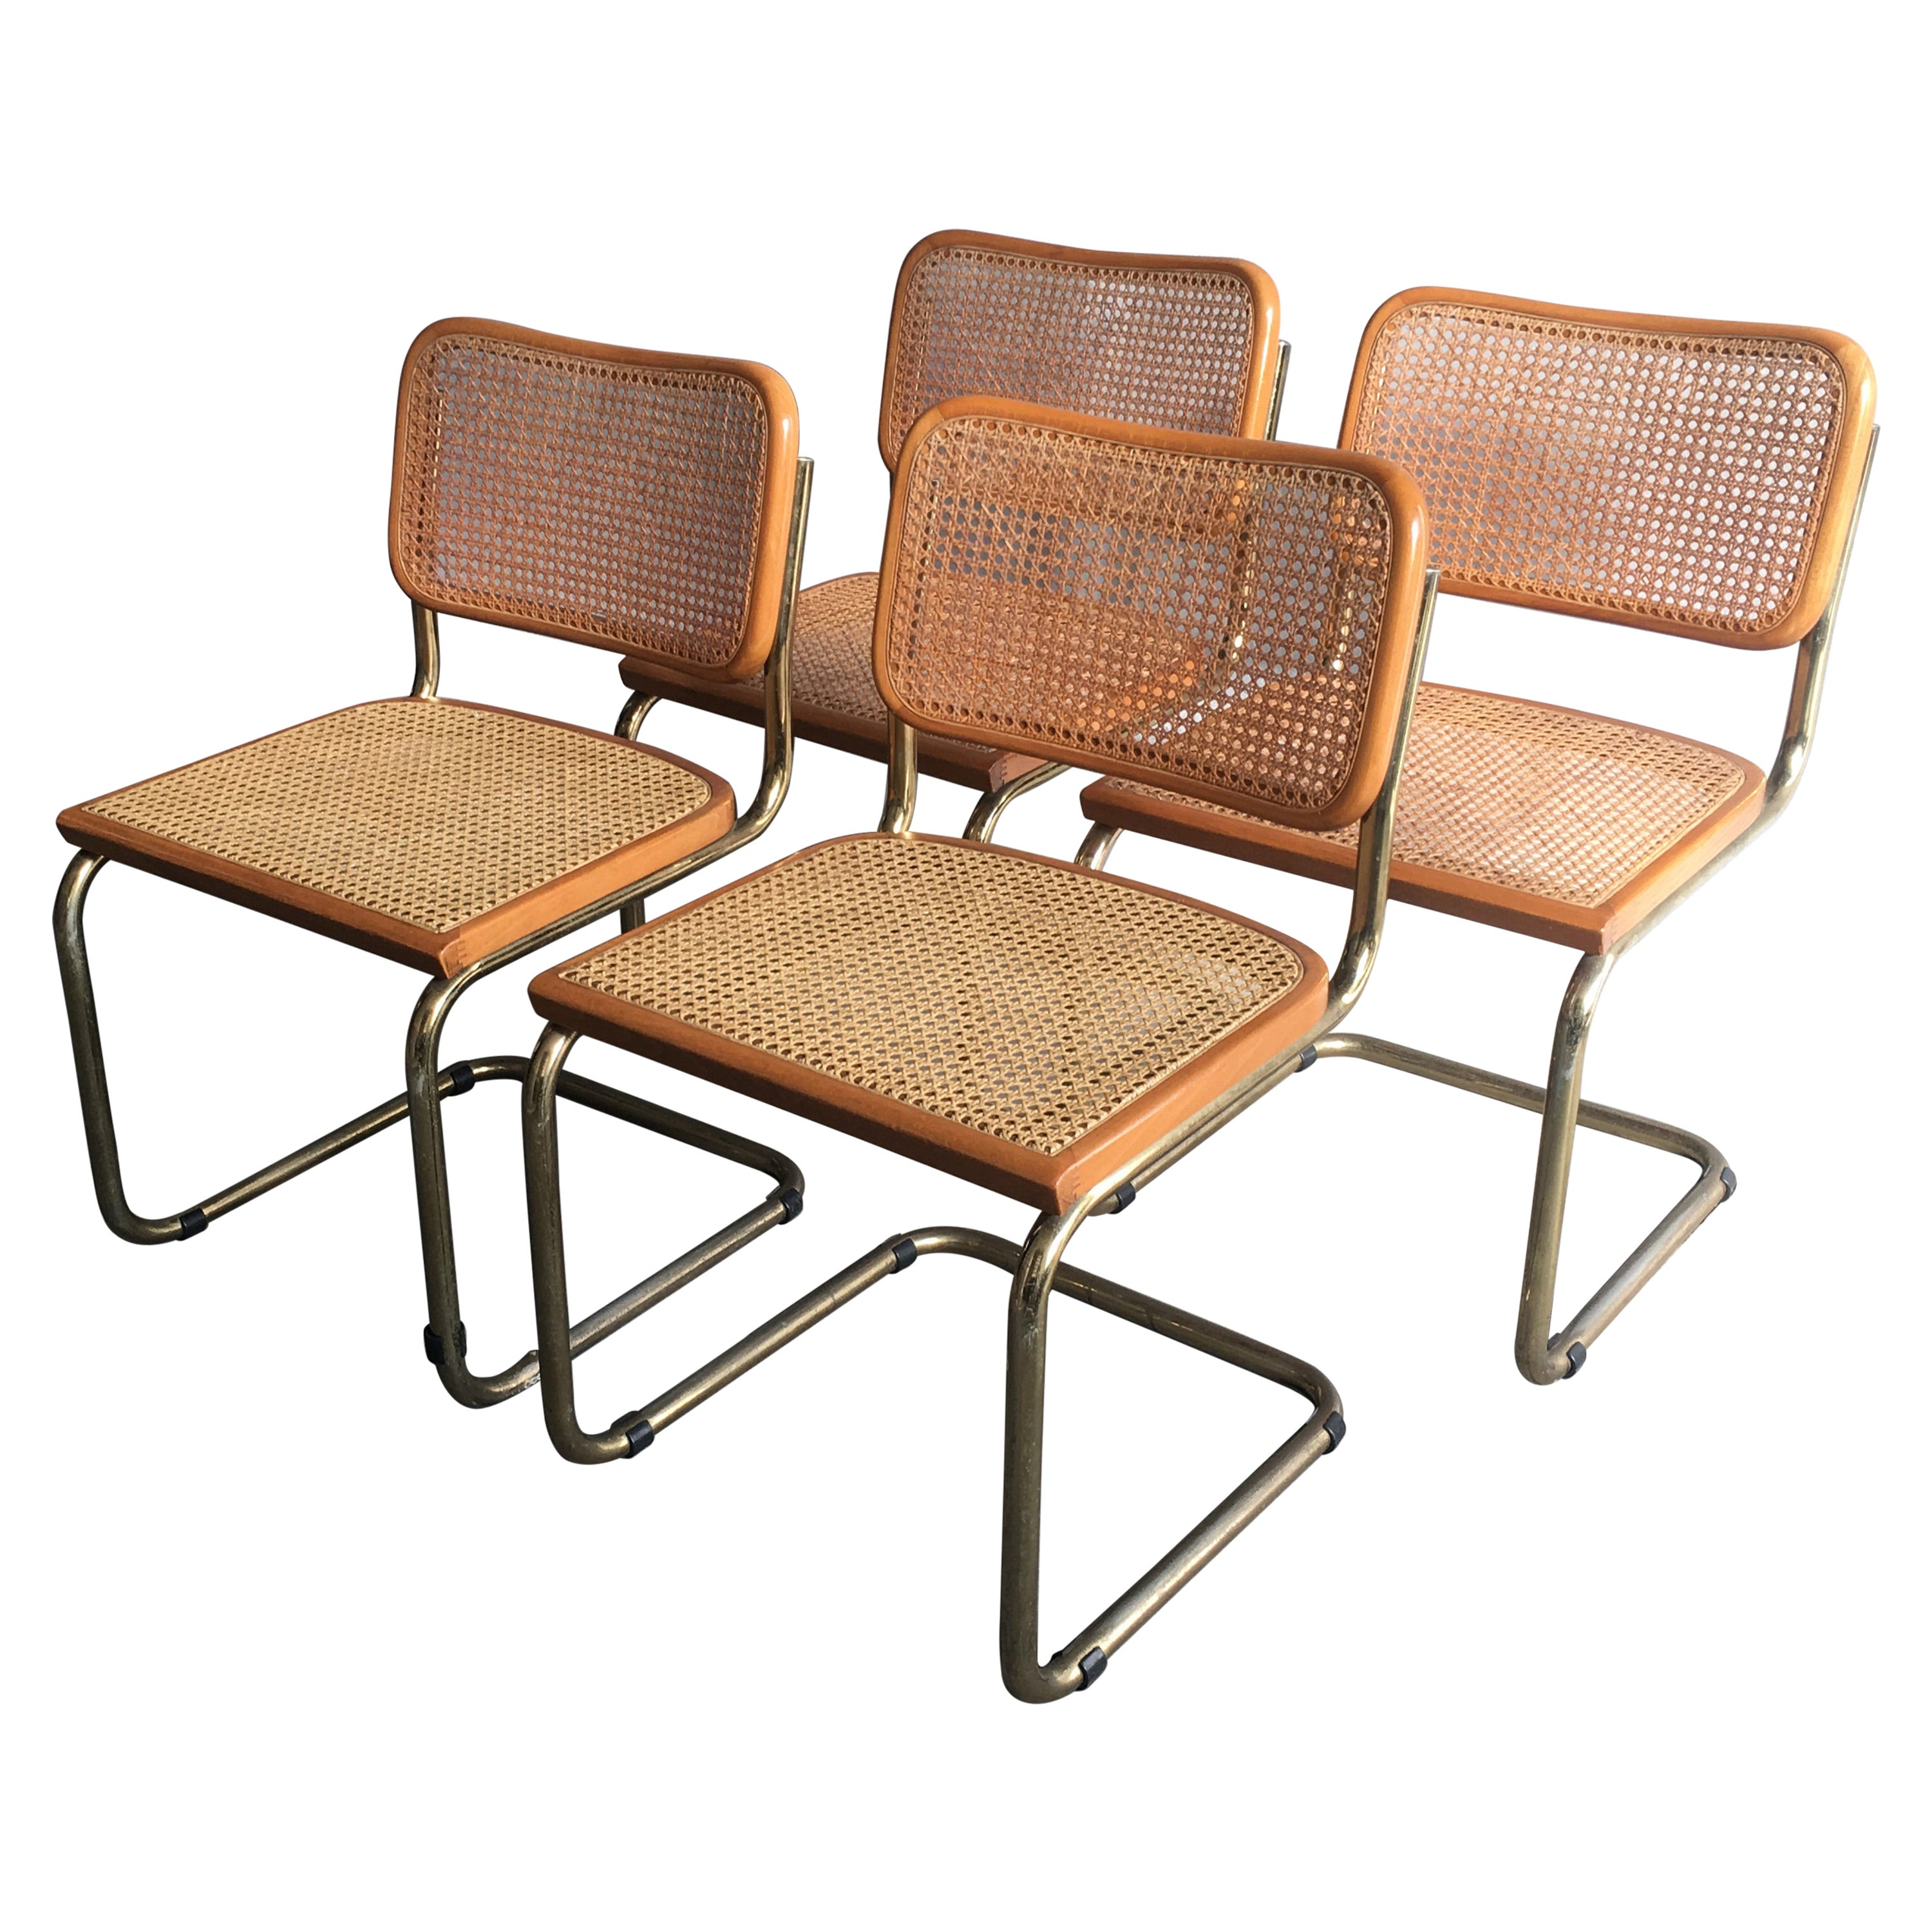 Mid-Century Modern Italian Set of 4 Cesca Chairs by Marcel Breuer, 1970s